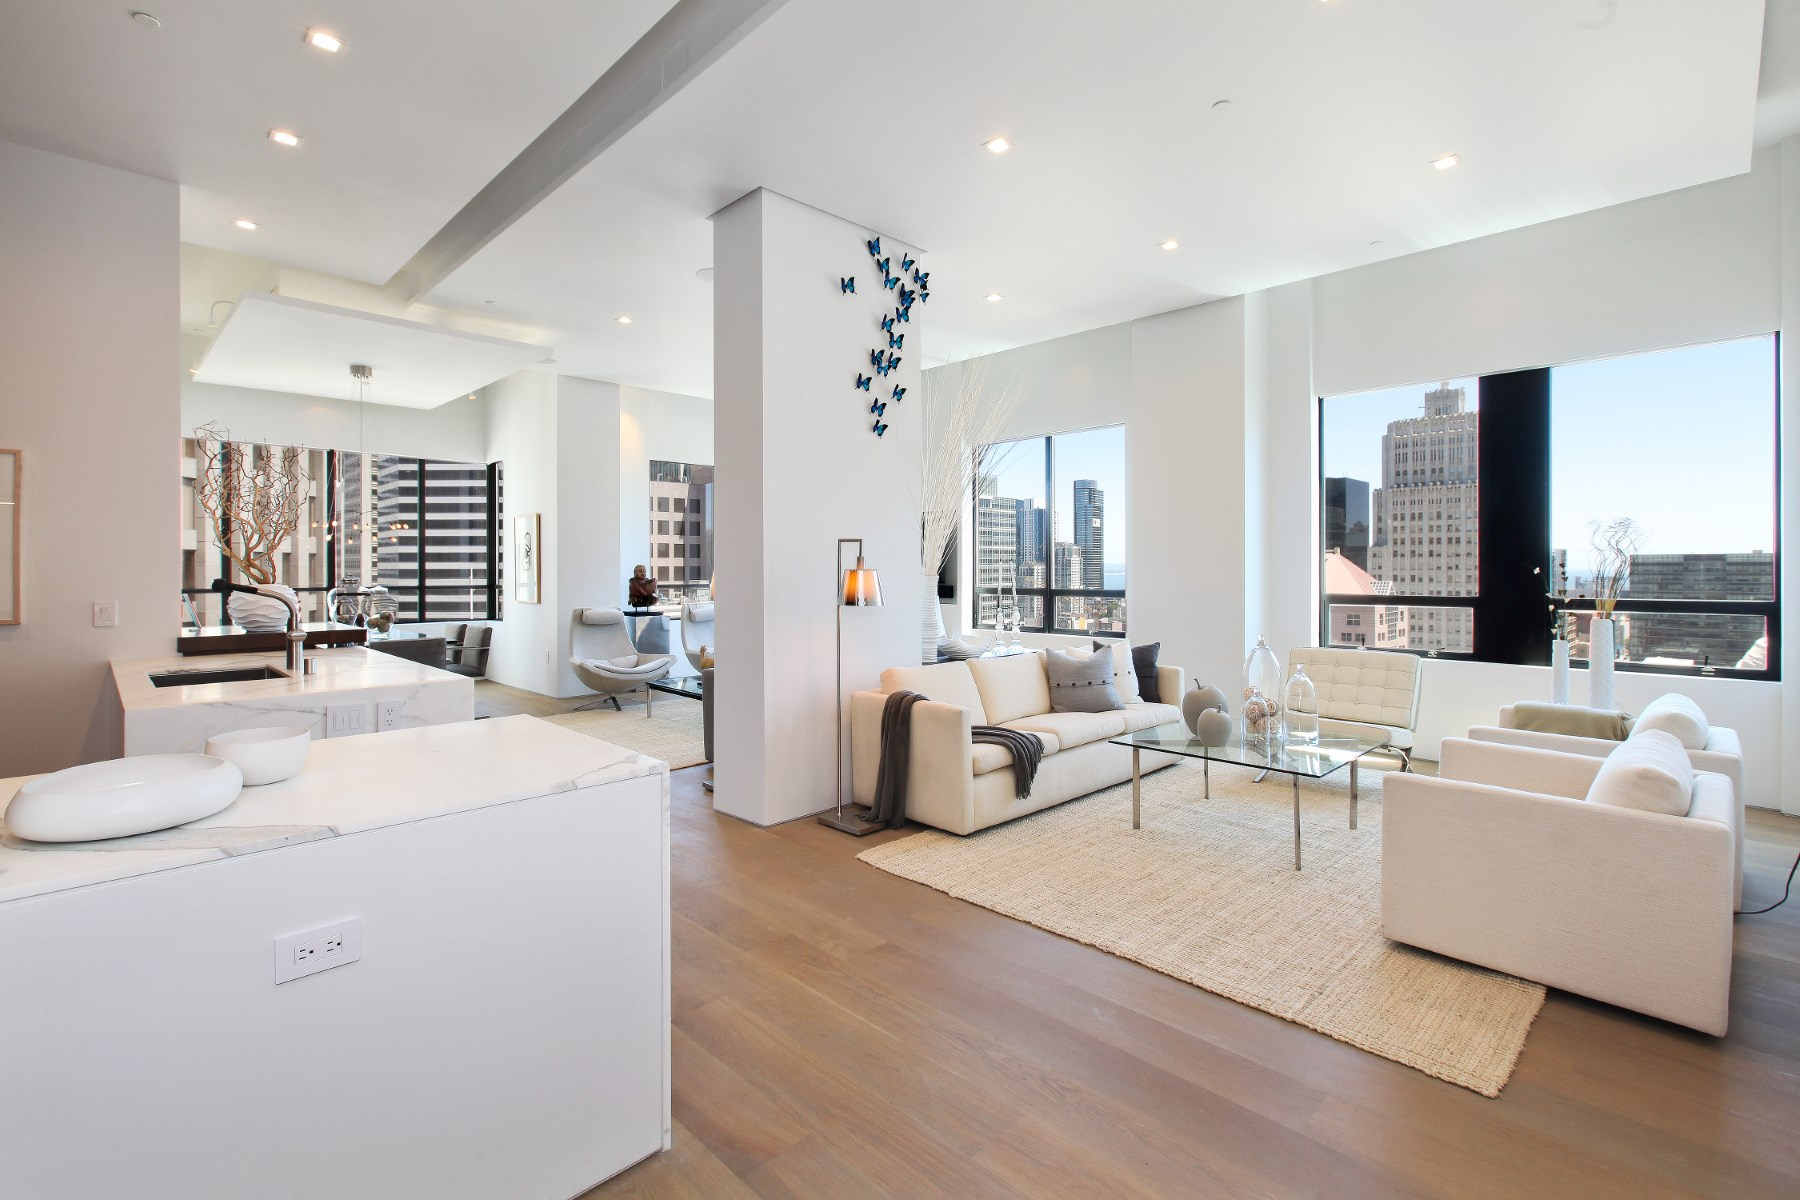 Apartment for Sale at Ritz-Carlton Modern View Residence 690 Market St Unit 1704 Financial District, San Francisco, California, 94104 United States